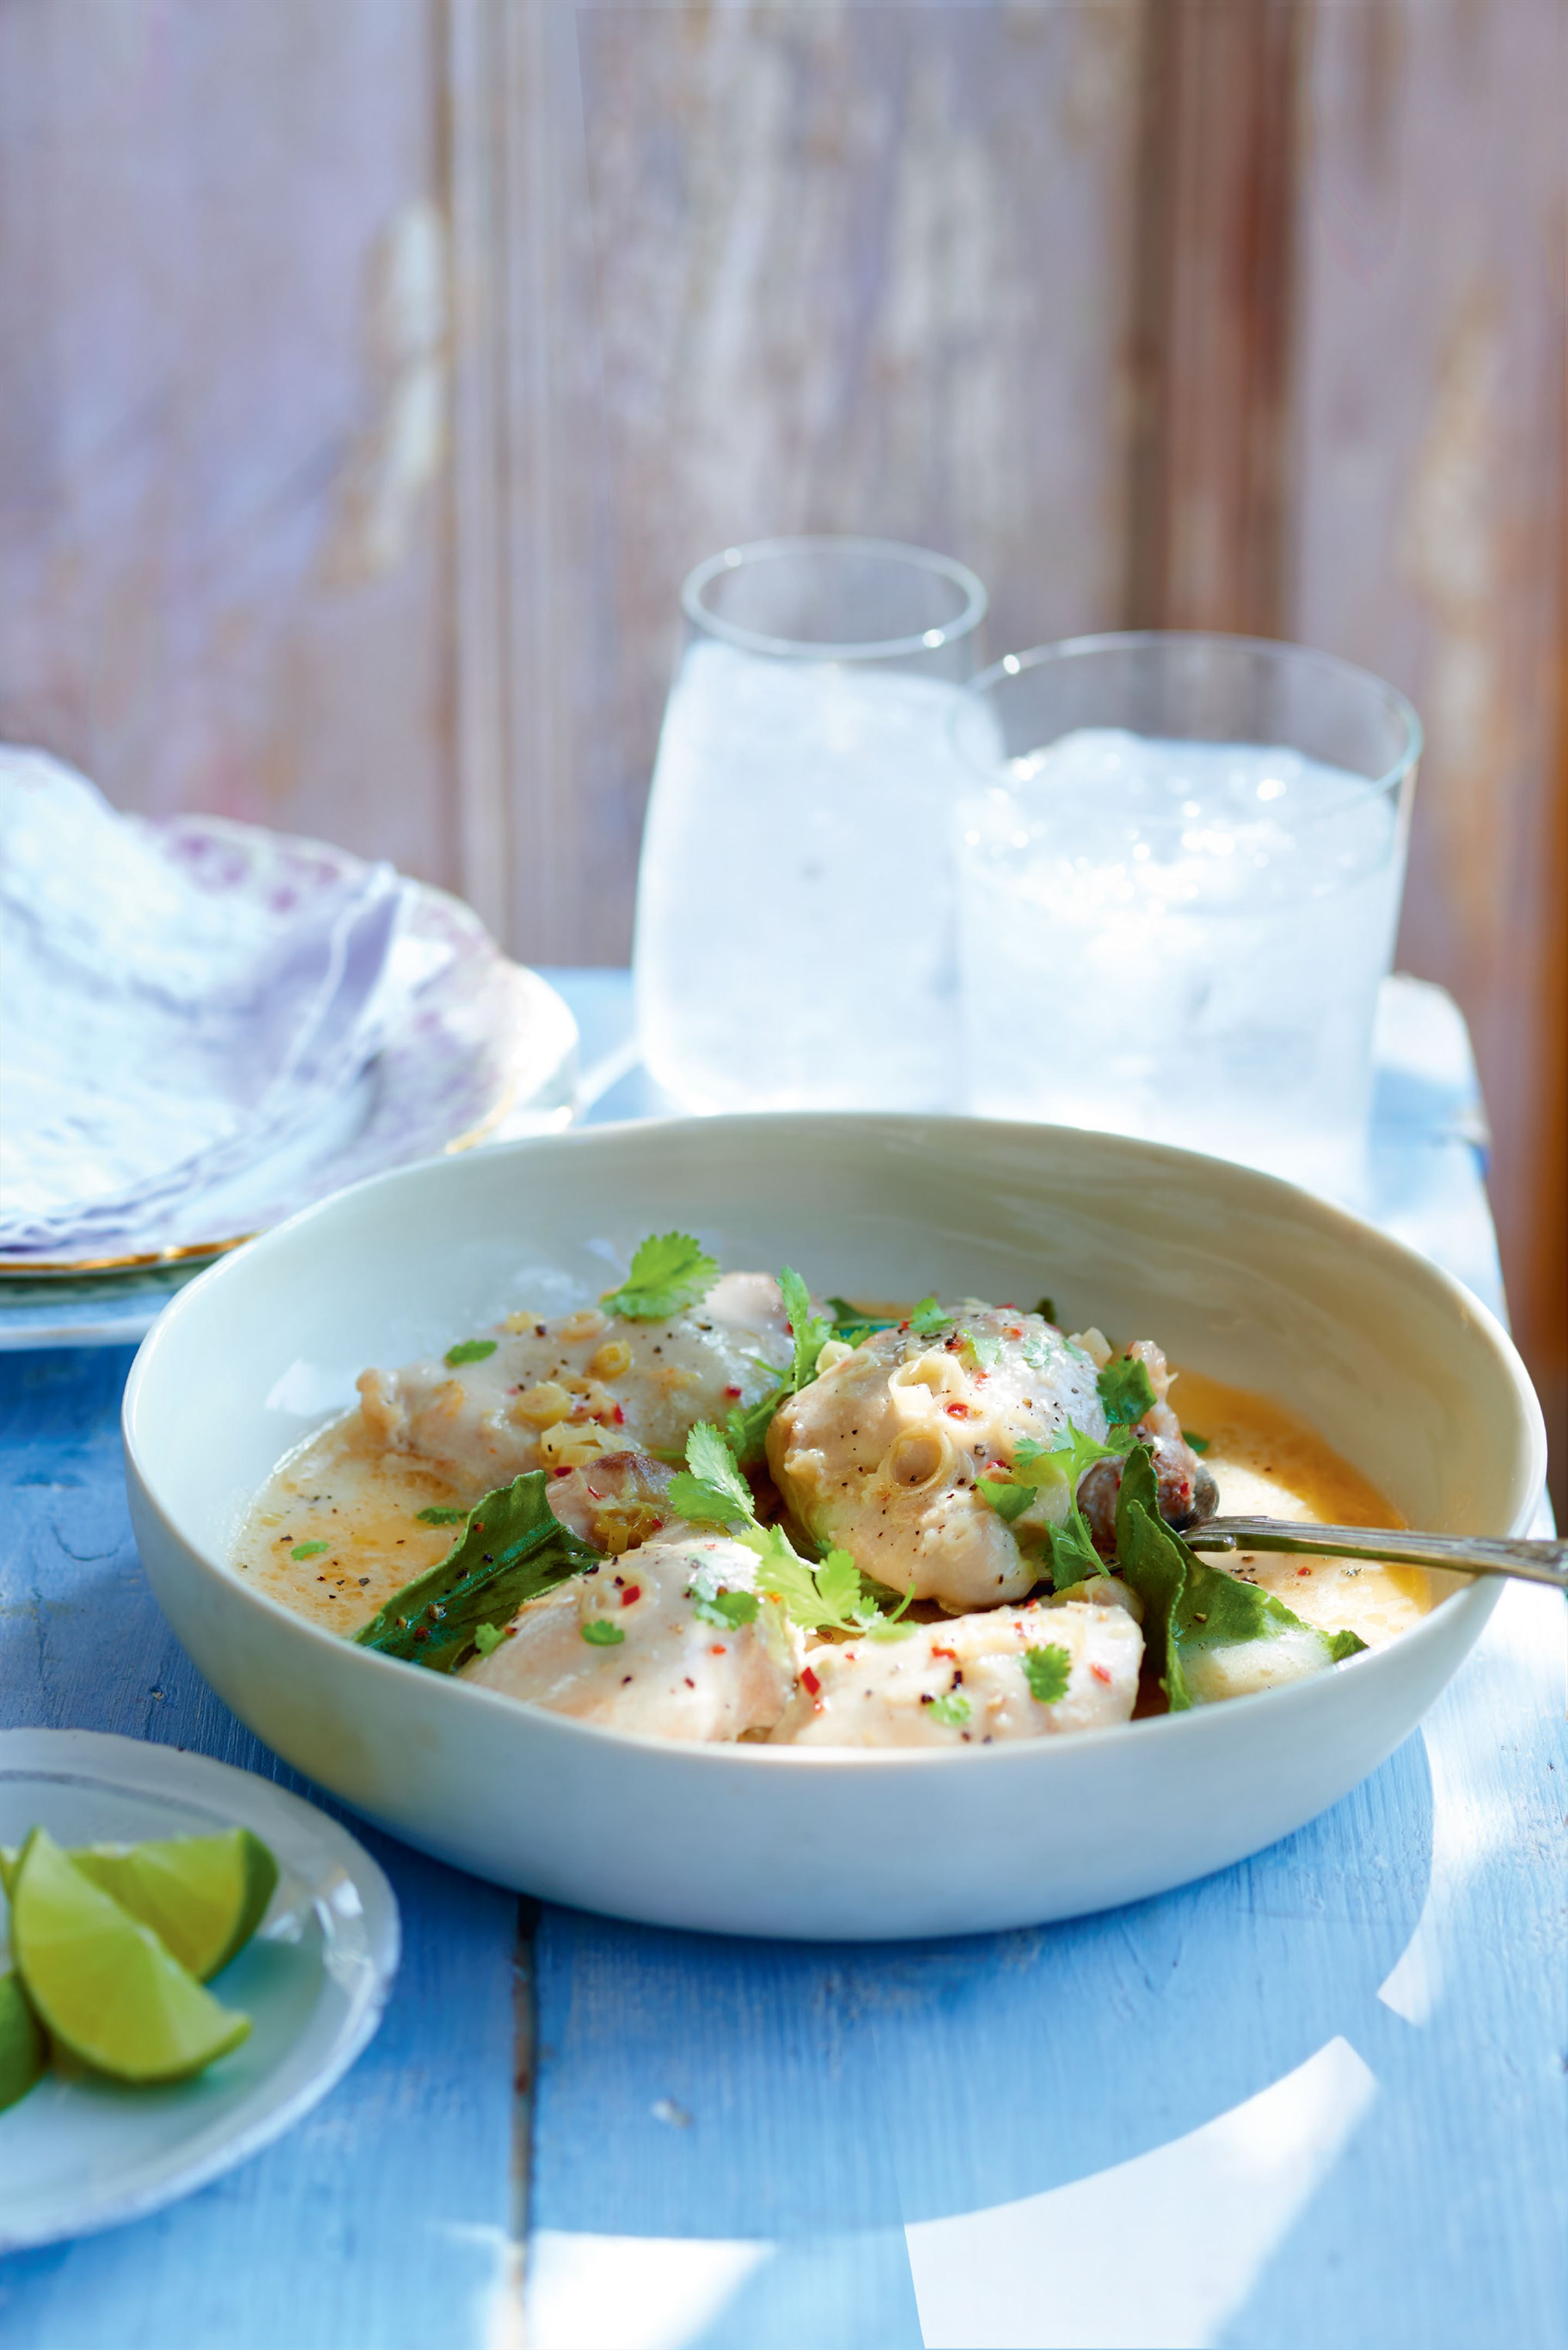 Chicken with lemongrass, lime and coriander